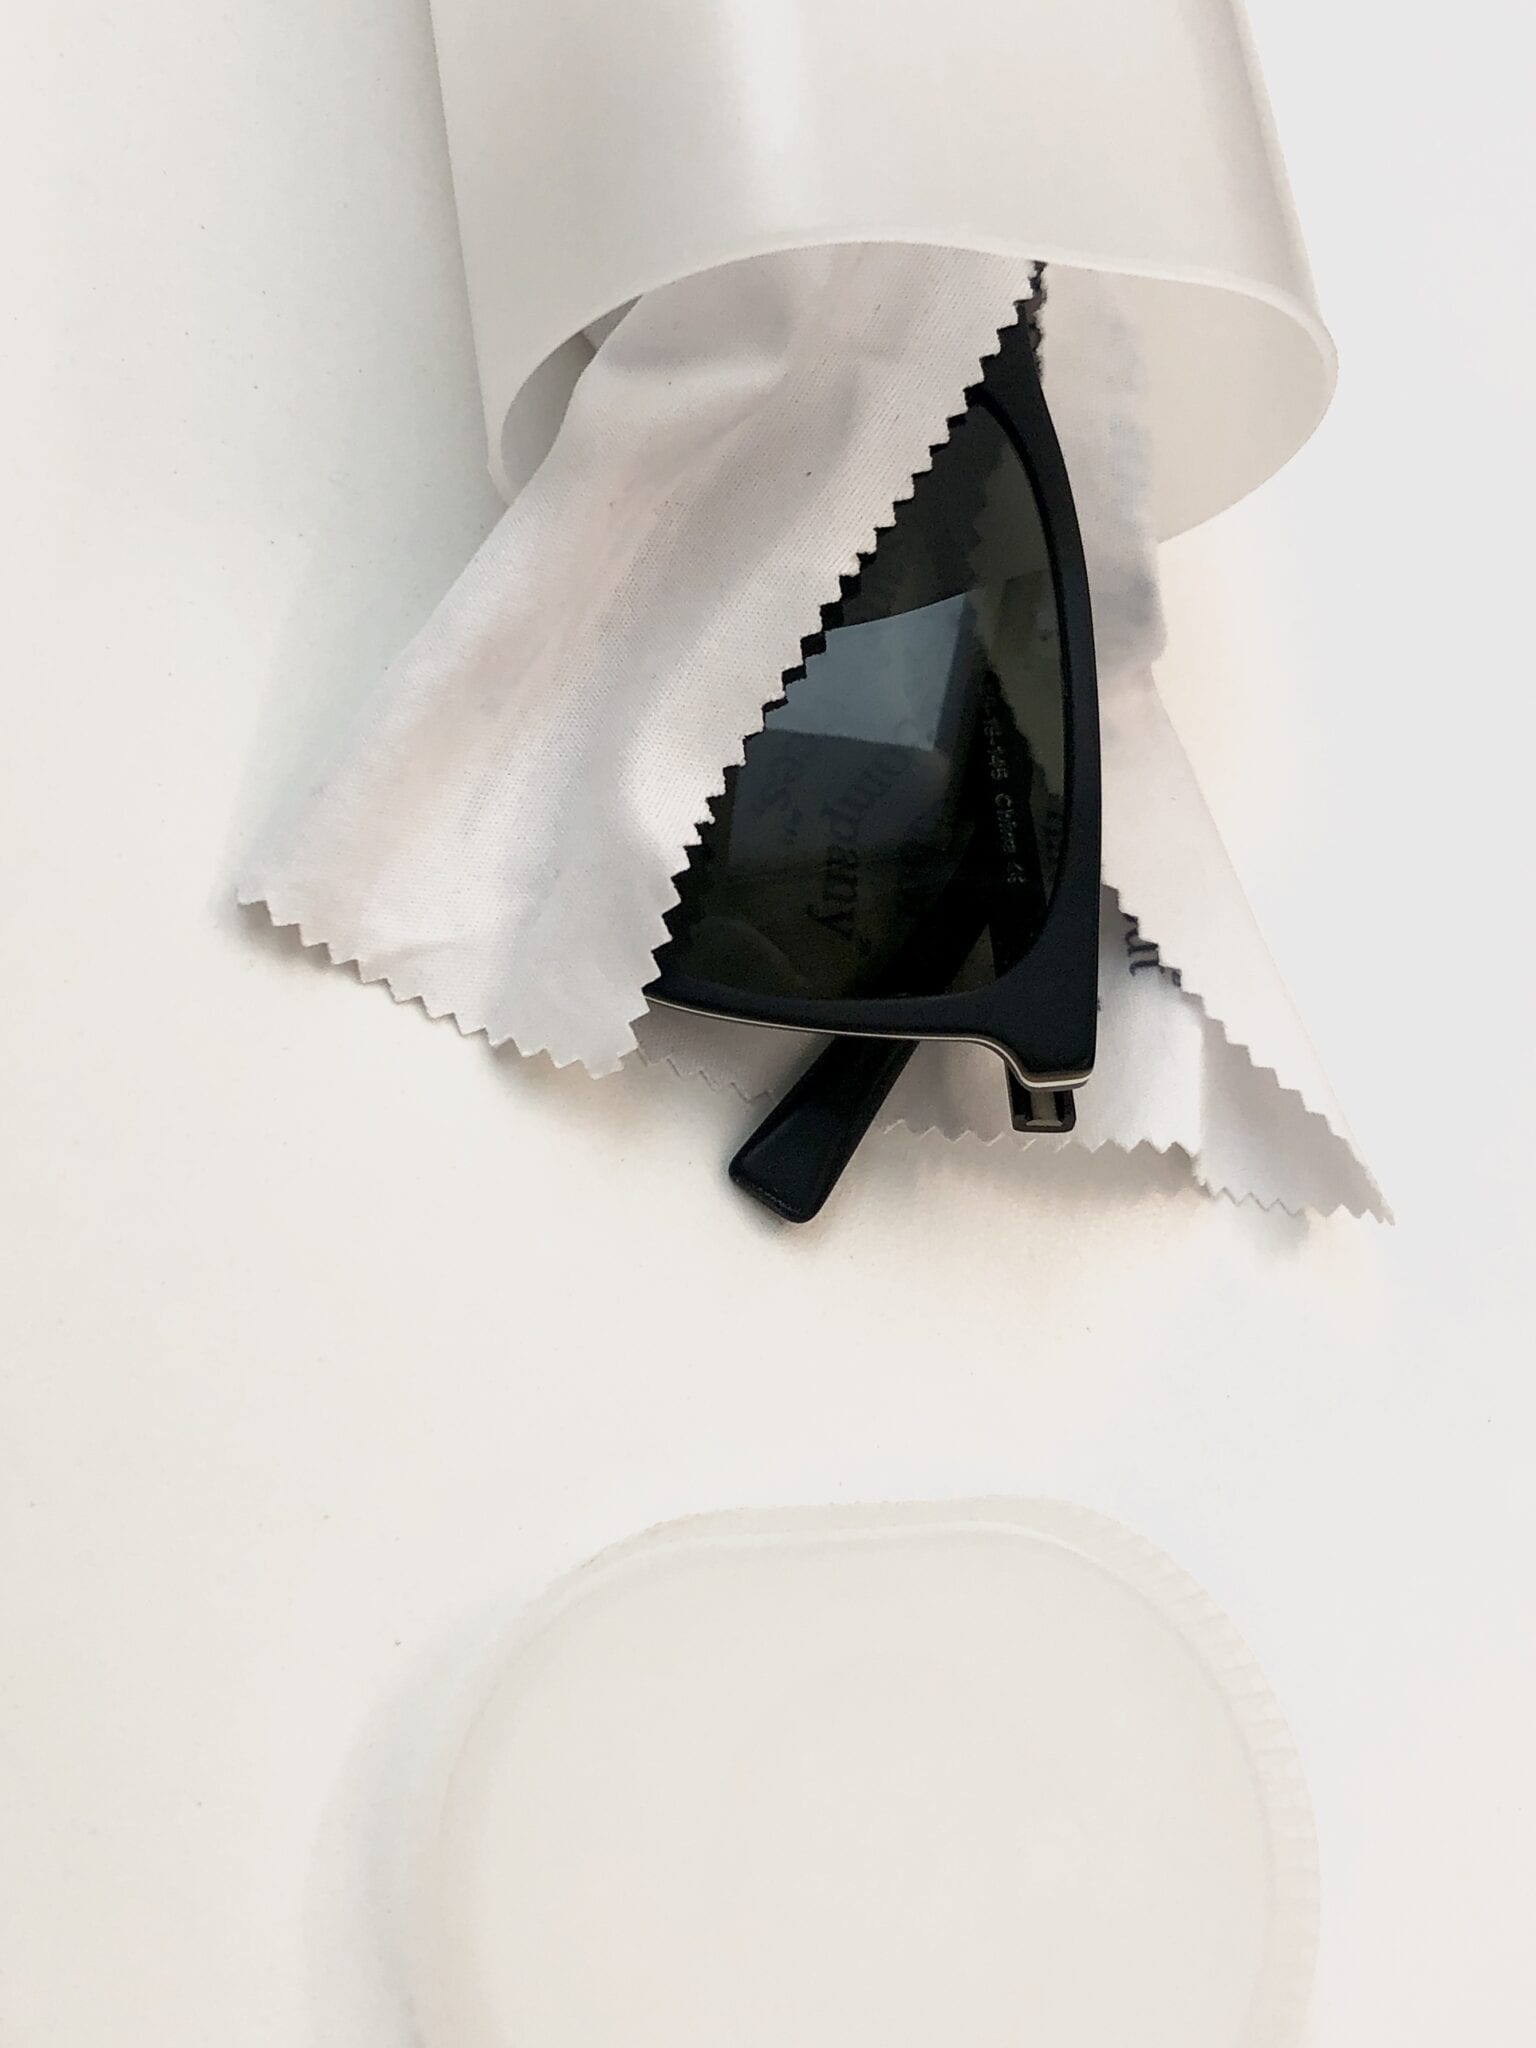 A pair of sunglasses wrapped in a cloth inside a Crystal Light container.